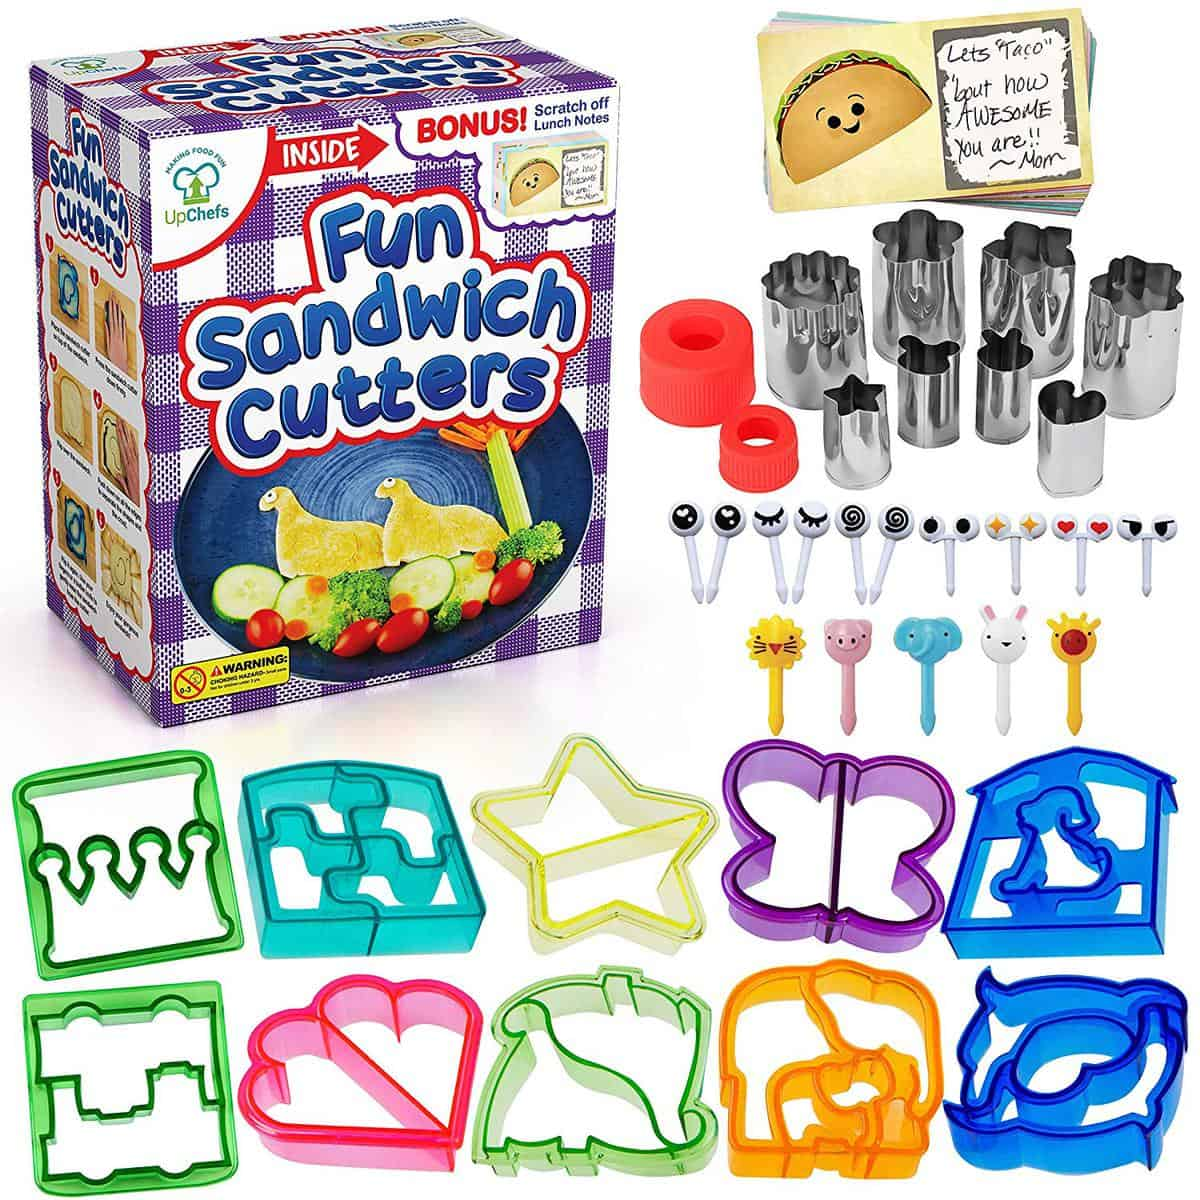 UpChefs Sandwich Cutters for kids box and items laid out with white background.